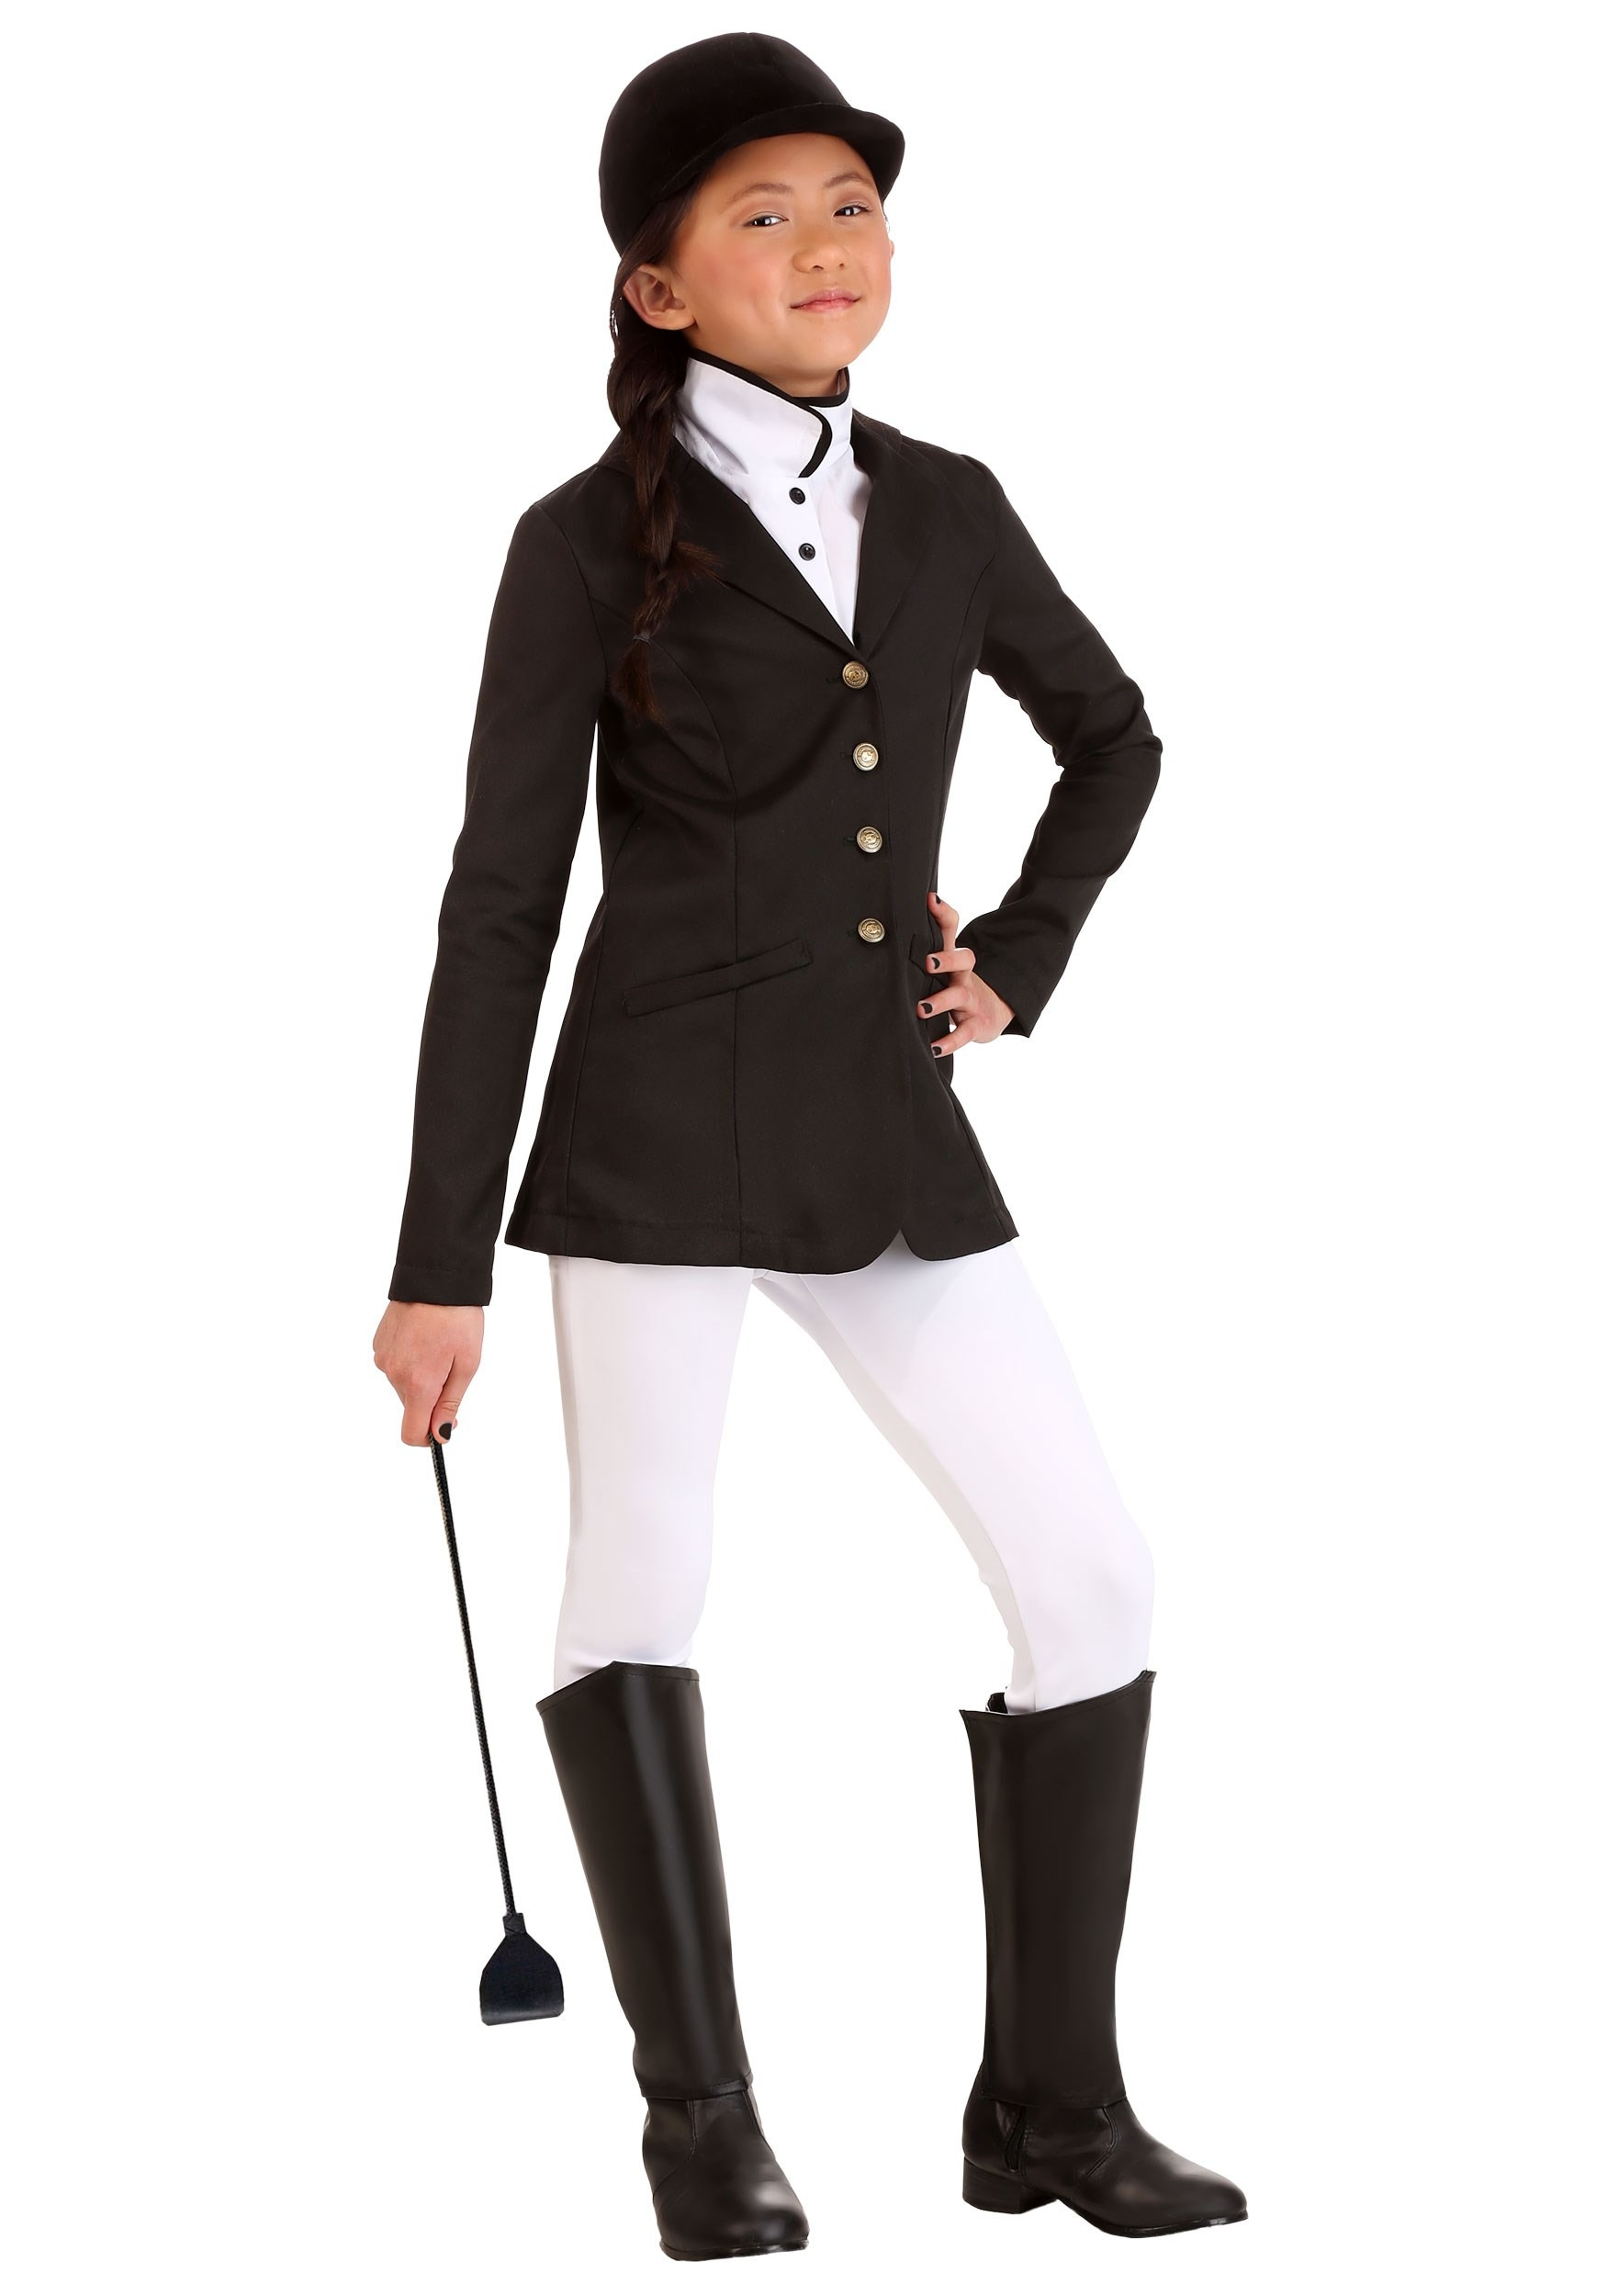 Girls Equestrian Costume Jockey Kids